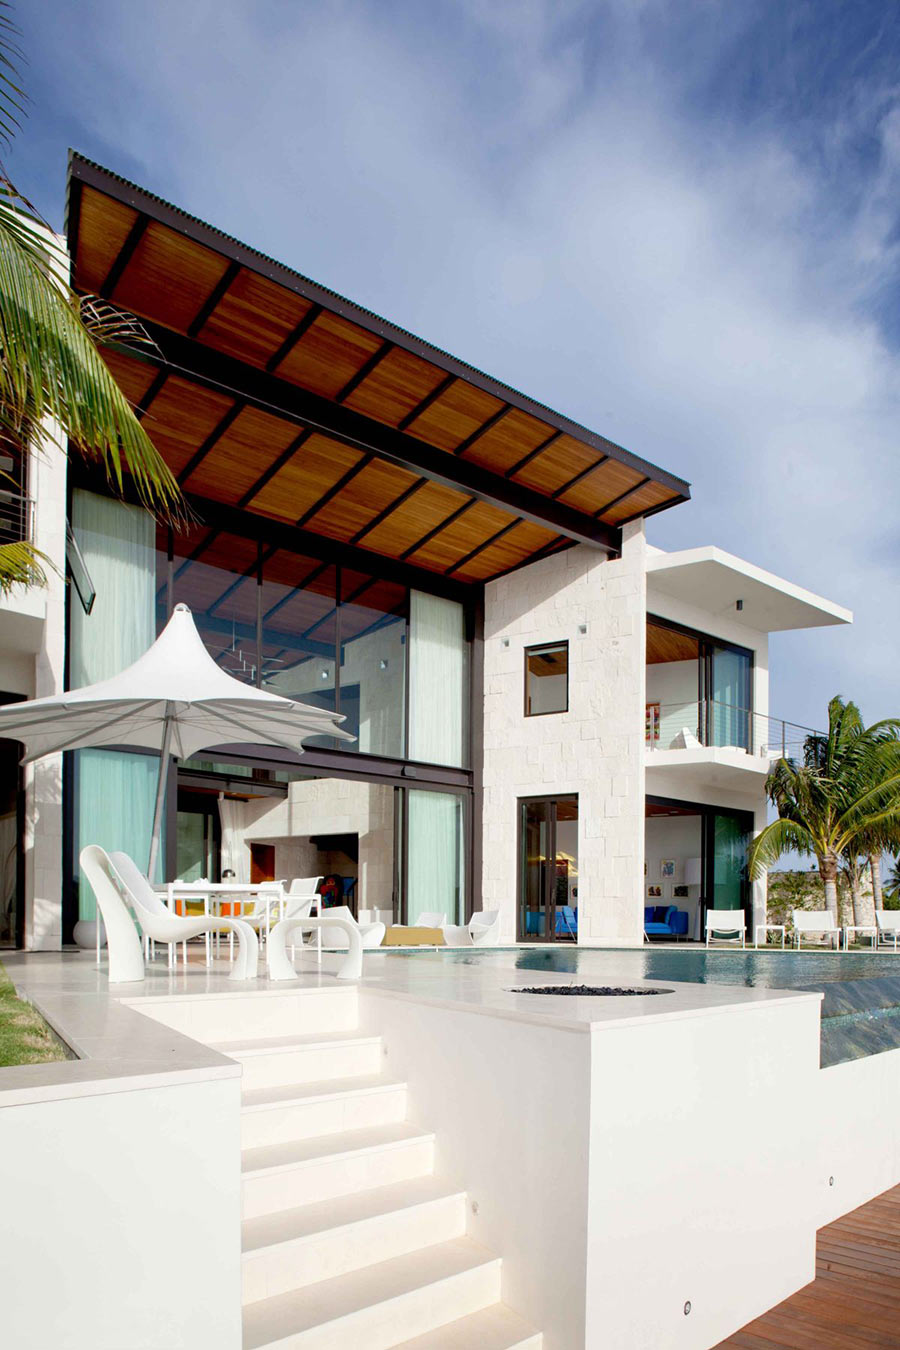 Infinity Pool, Outdoor Seating, Bonaire House, Netherlands Antilles